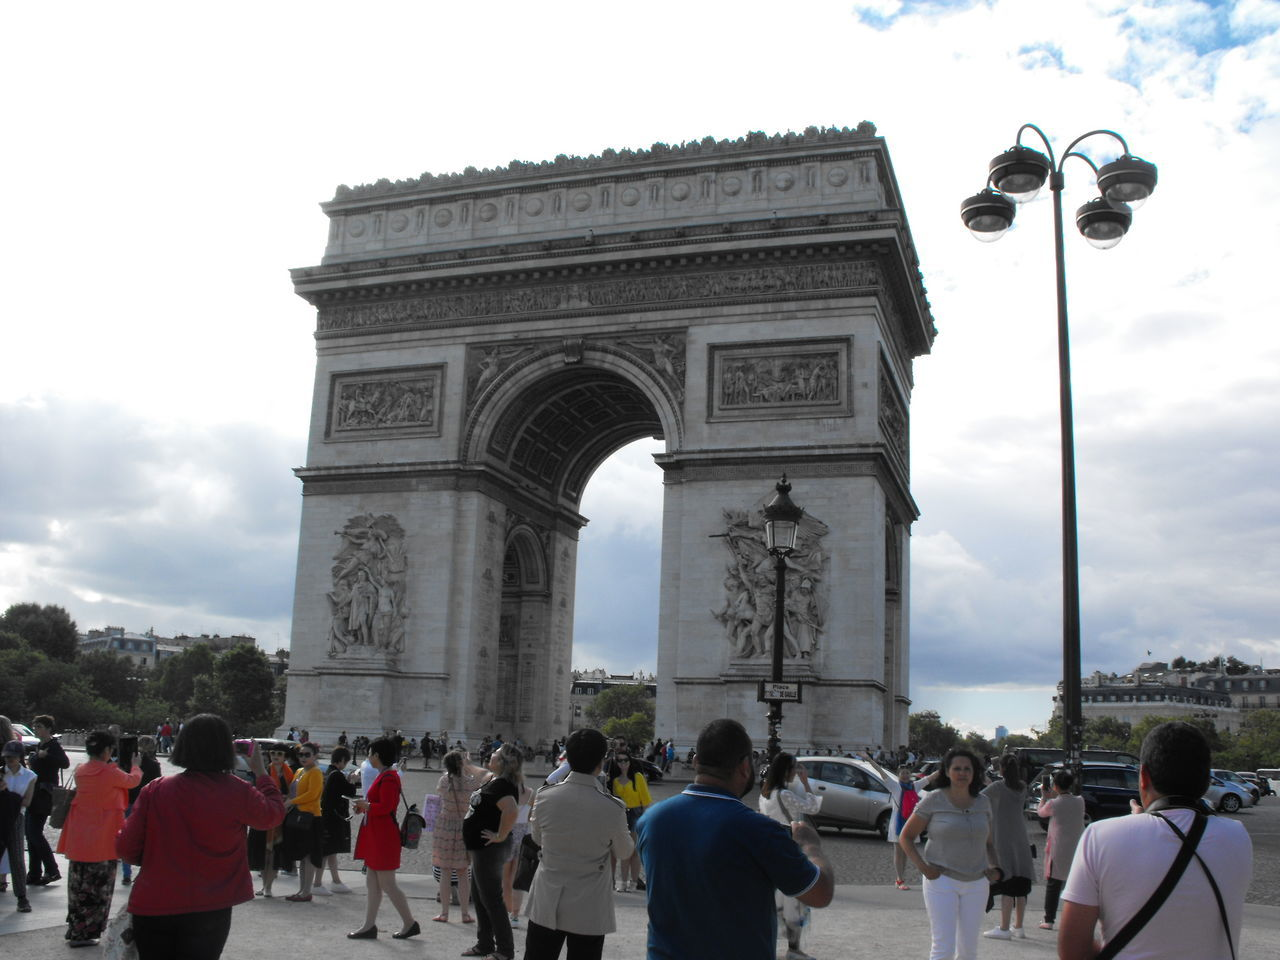 sky, large group of people, architecture, built structure, history, tourism, triumphal arch, real people, travel destinations, cloud - sky, outdoors, travel, women, day, city, people